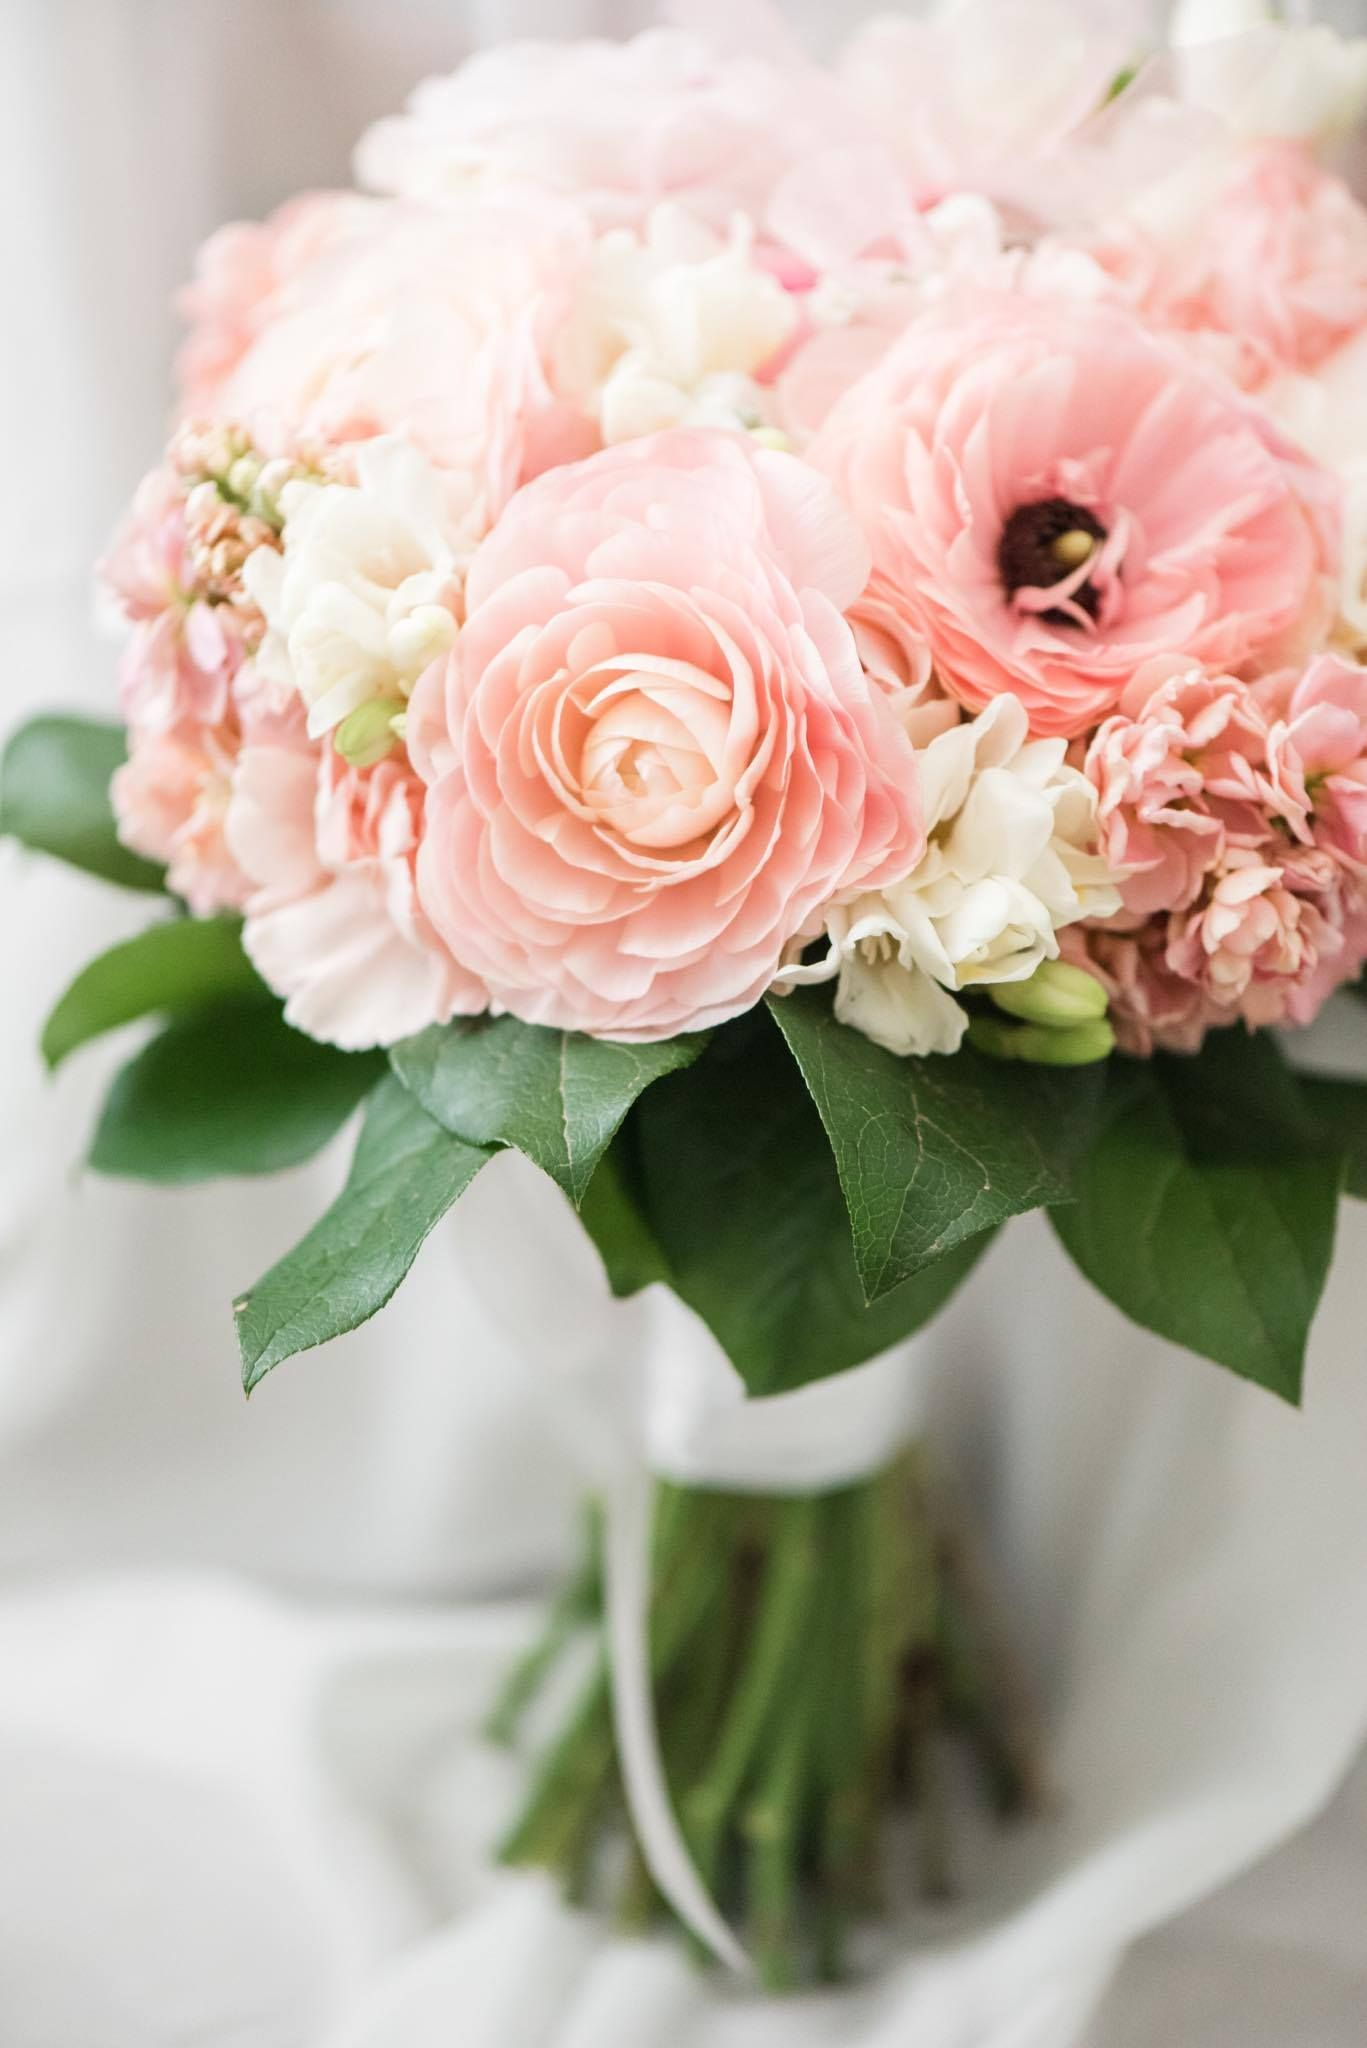 Bridal Bouquet In Pastel Colors With Ranunculus Roses Stock Carnations Freesia And Salal Flower Bouquet Wedding Carnation Flower Flowers